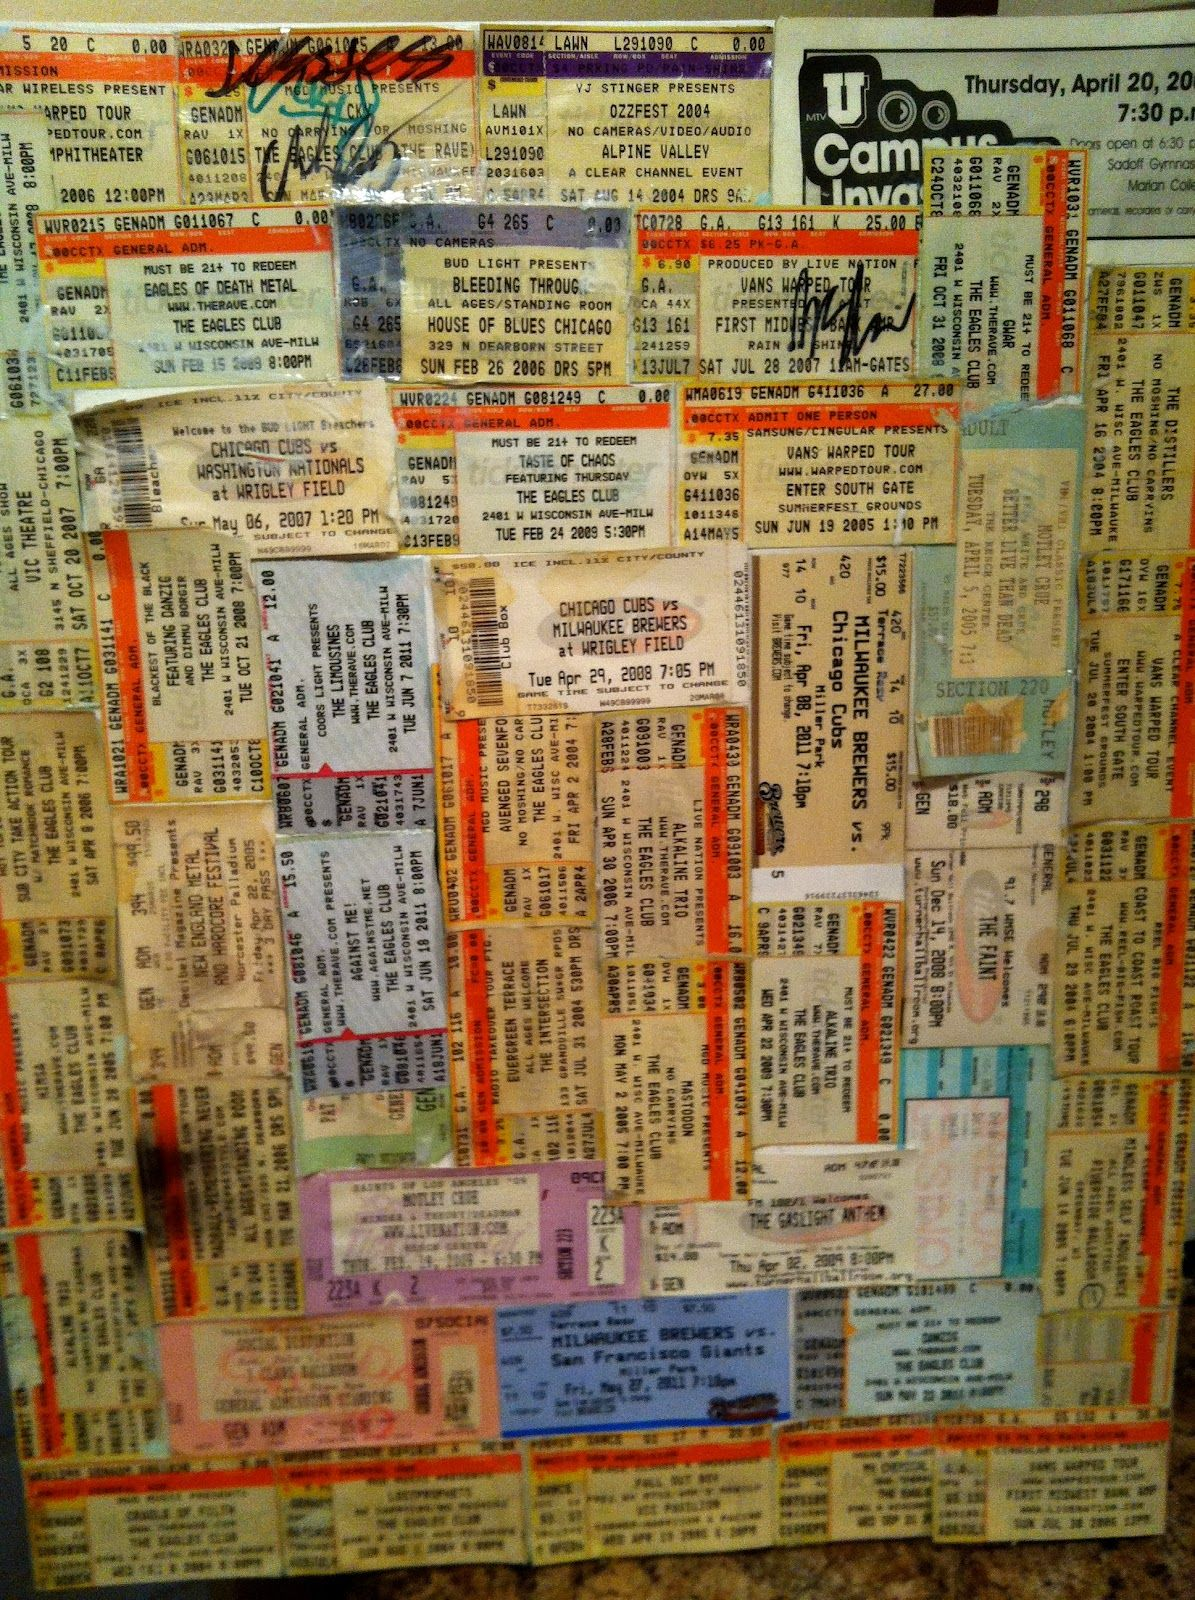 I Have So Many Concert Tickets, Going To Make A Large Frame! Concert Ticket  How To Make A Concert Ticket